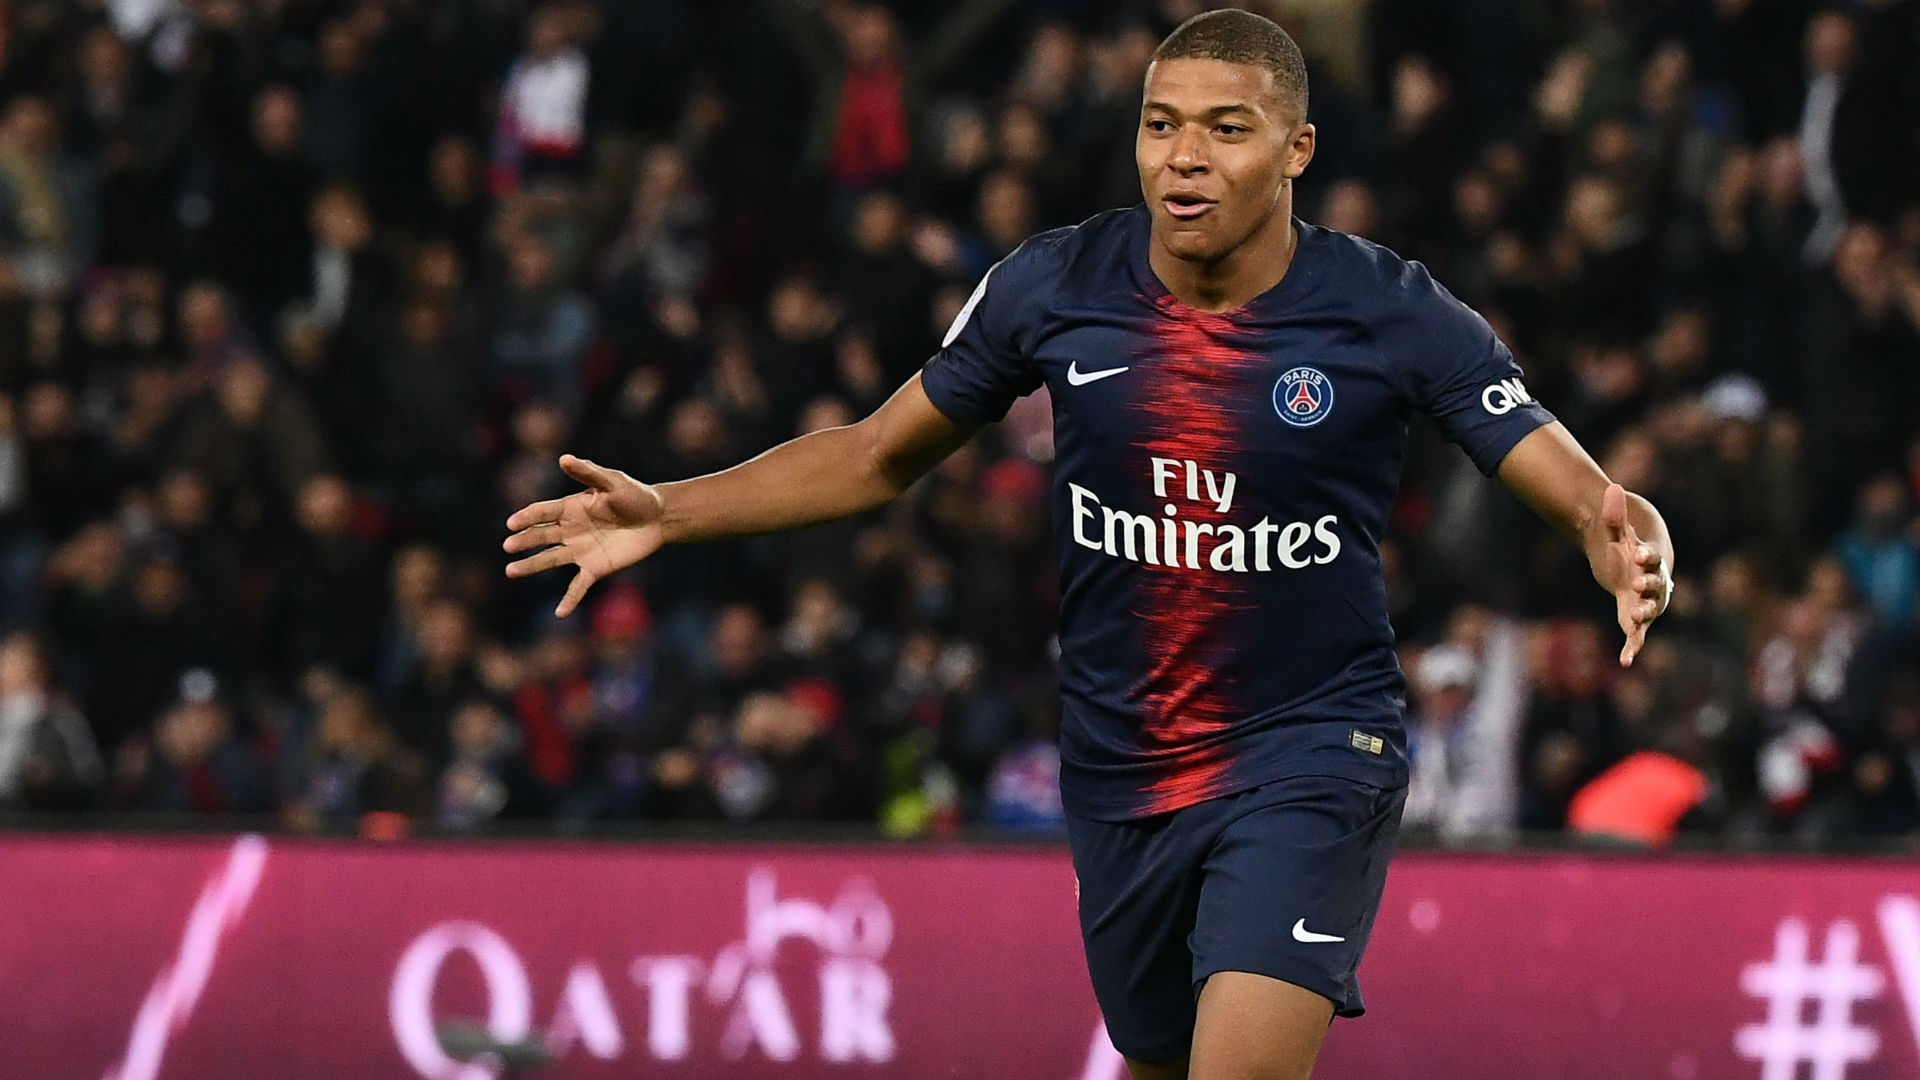 Mbappe scores 4 and earns penalty as PSG crush Lyon